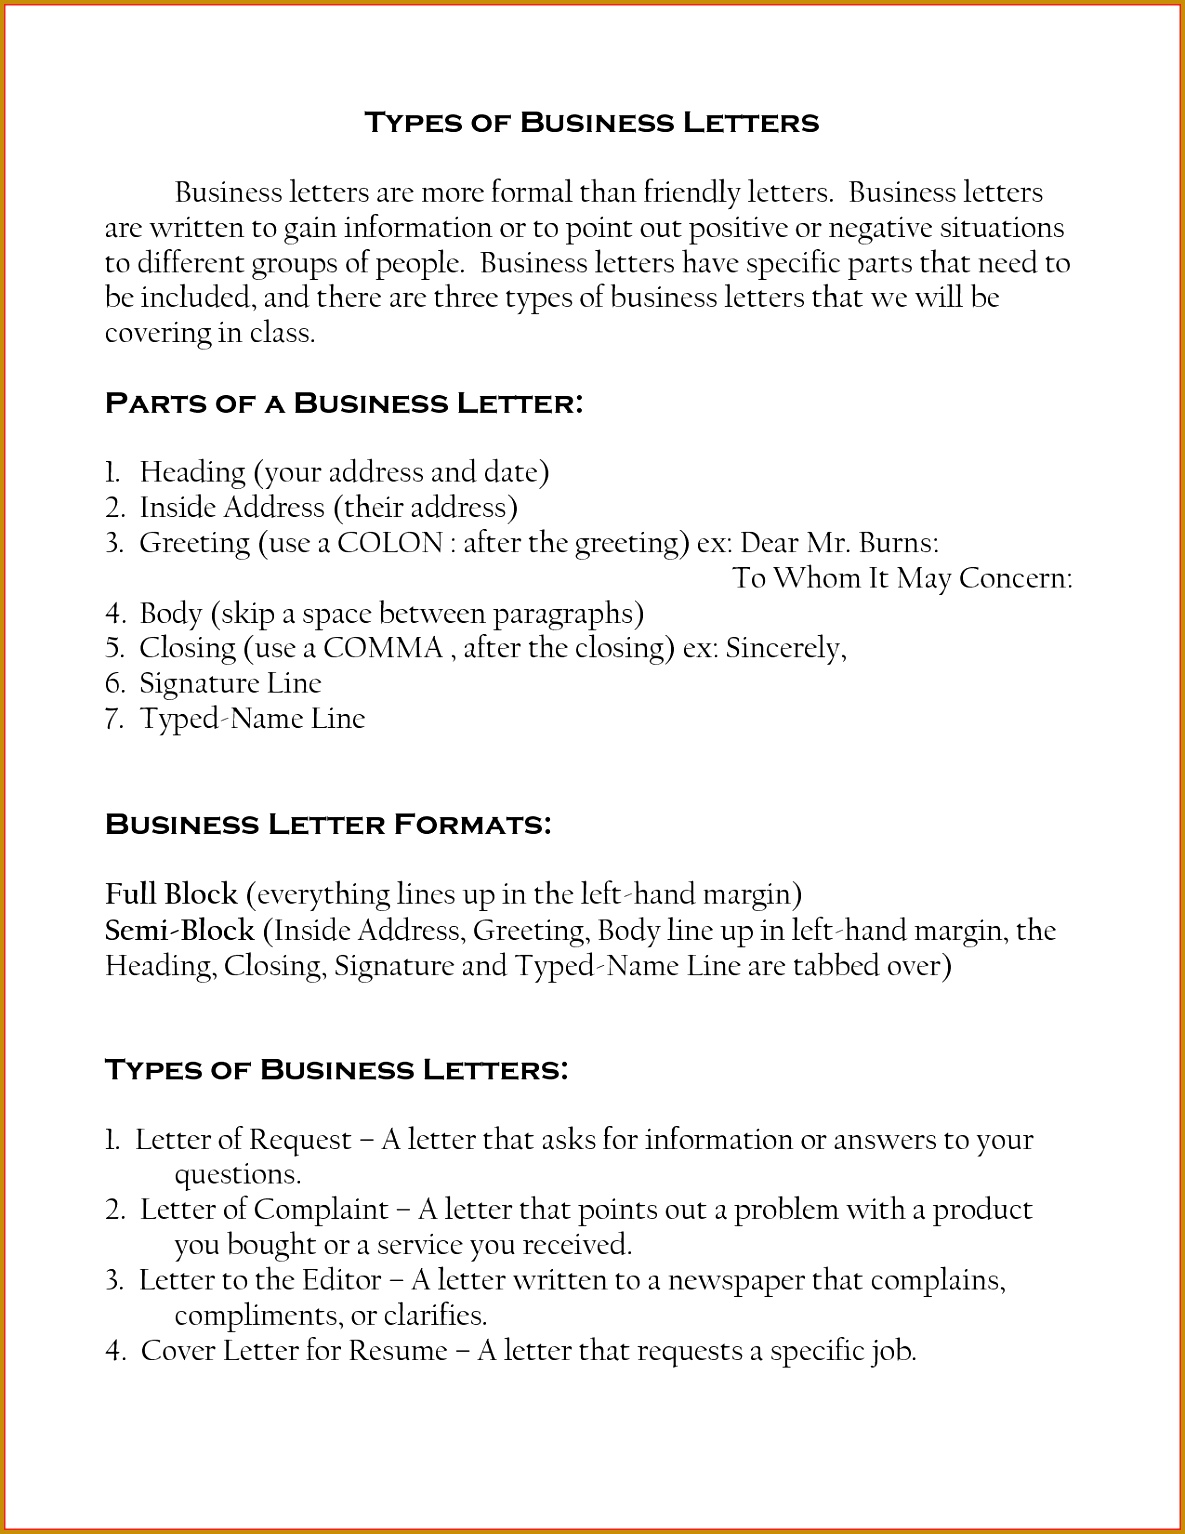 Business Letters School Transfer Letter Template Mind Map Template 3 Letter Business Names Inspirational Three Types Business Letters The Letter Sample 11851534